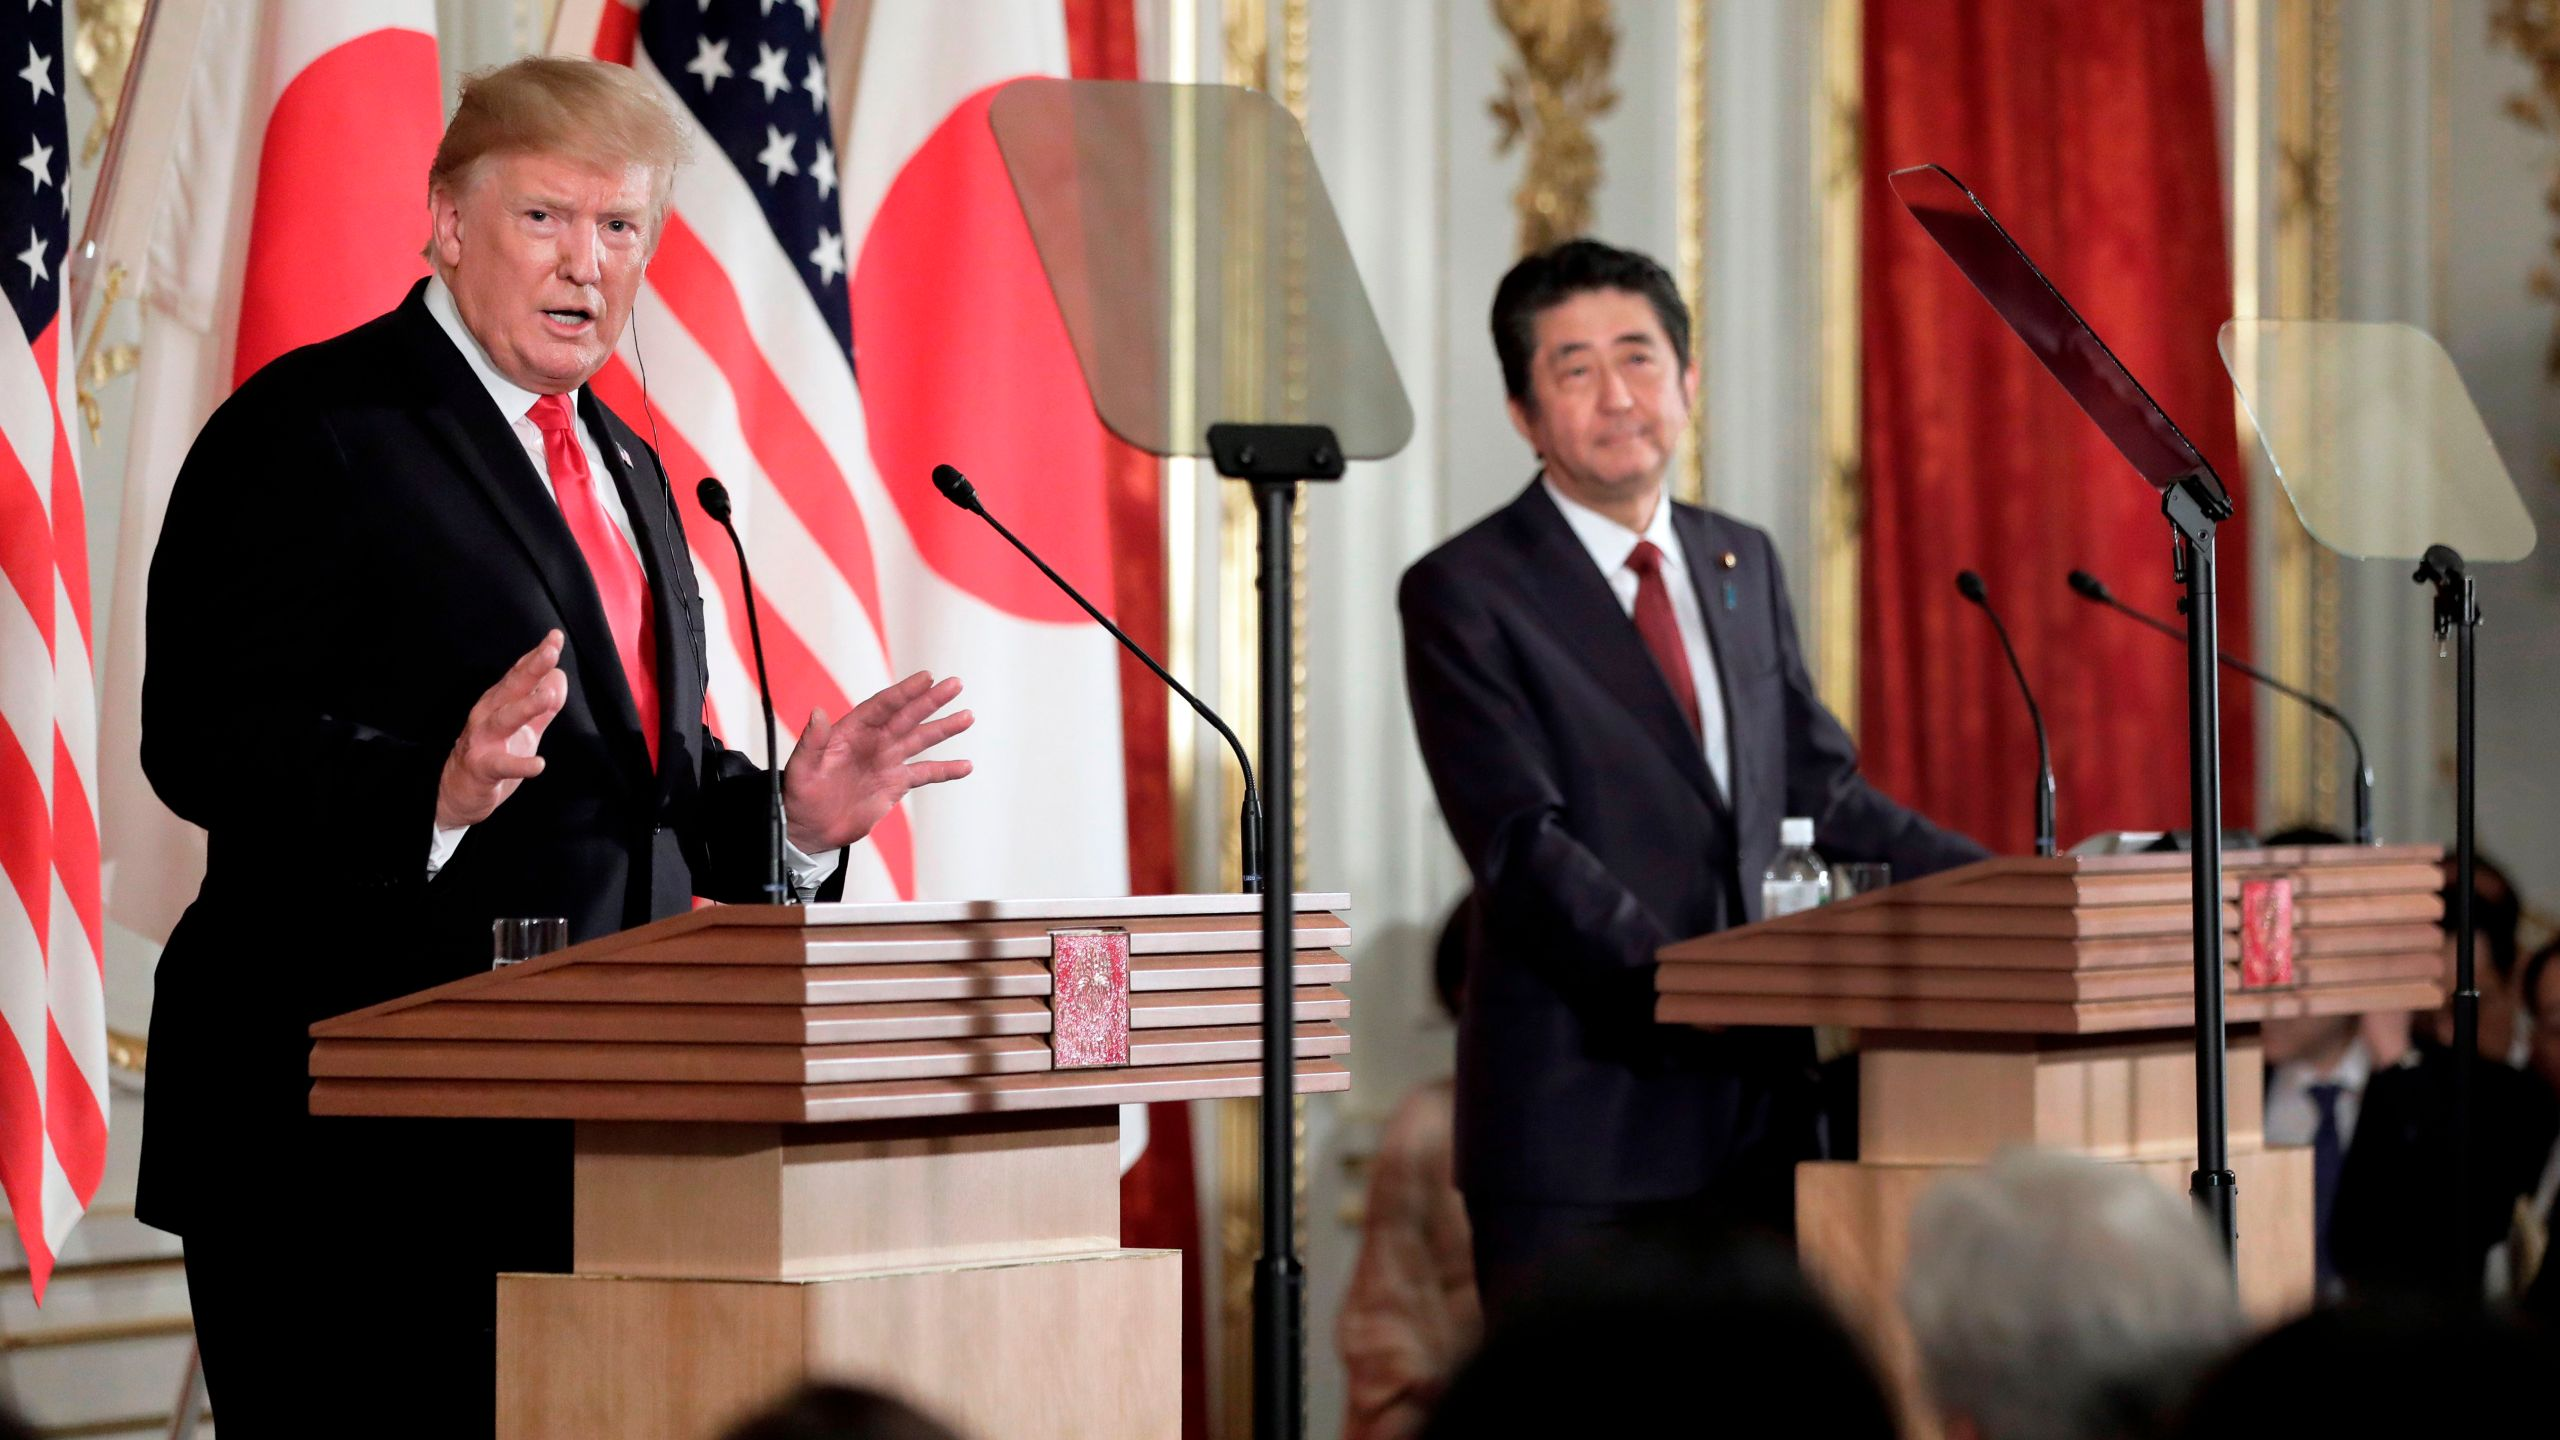 Donald Trump speaks during a joint press conference with Japan's Prime Minister Shinzo Abe at Akasaka Palace in Tokyo on May 27, 2019. (Credit: KIYOSHI OTA/AFP/Getty Images)